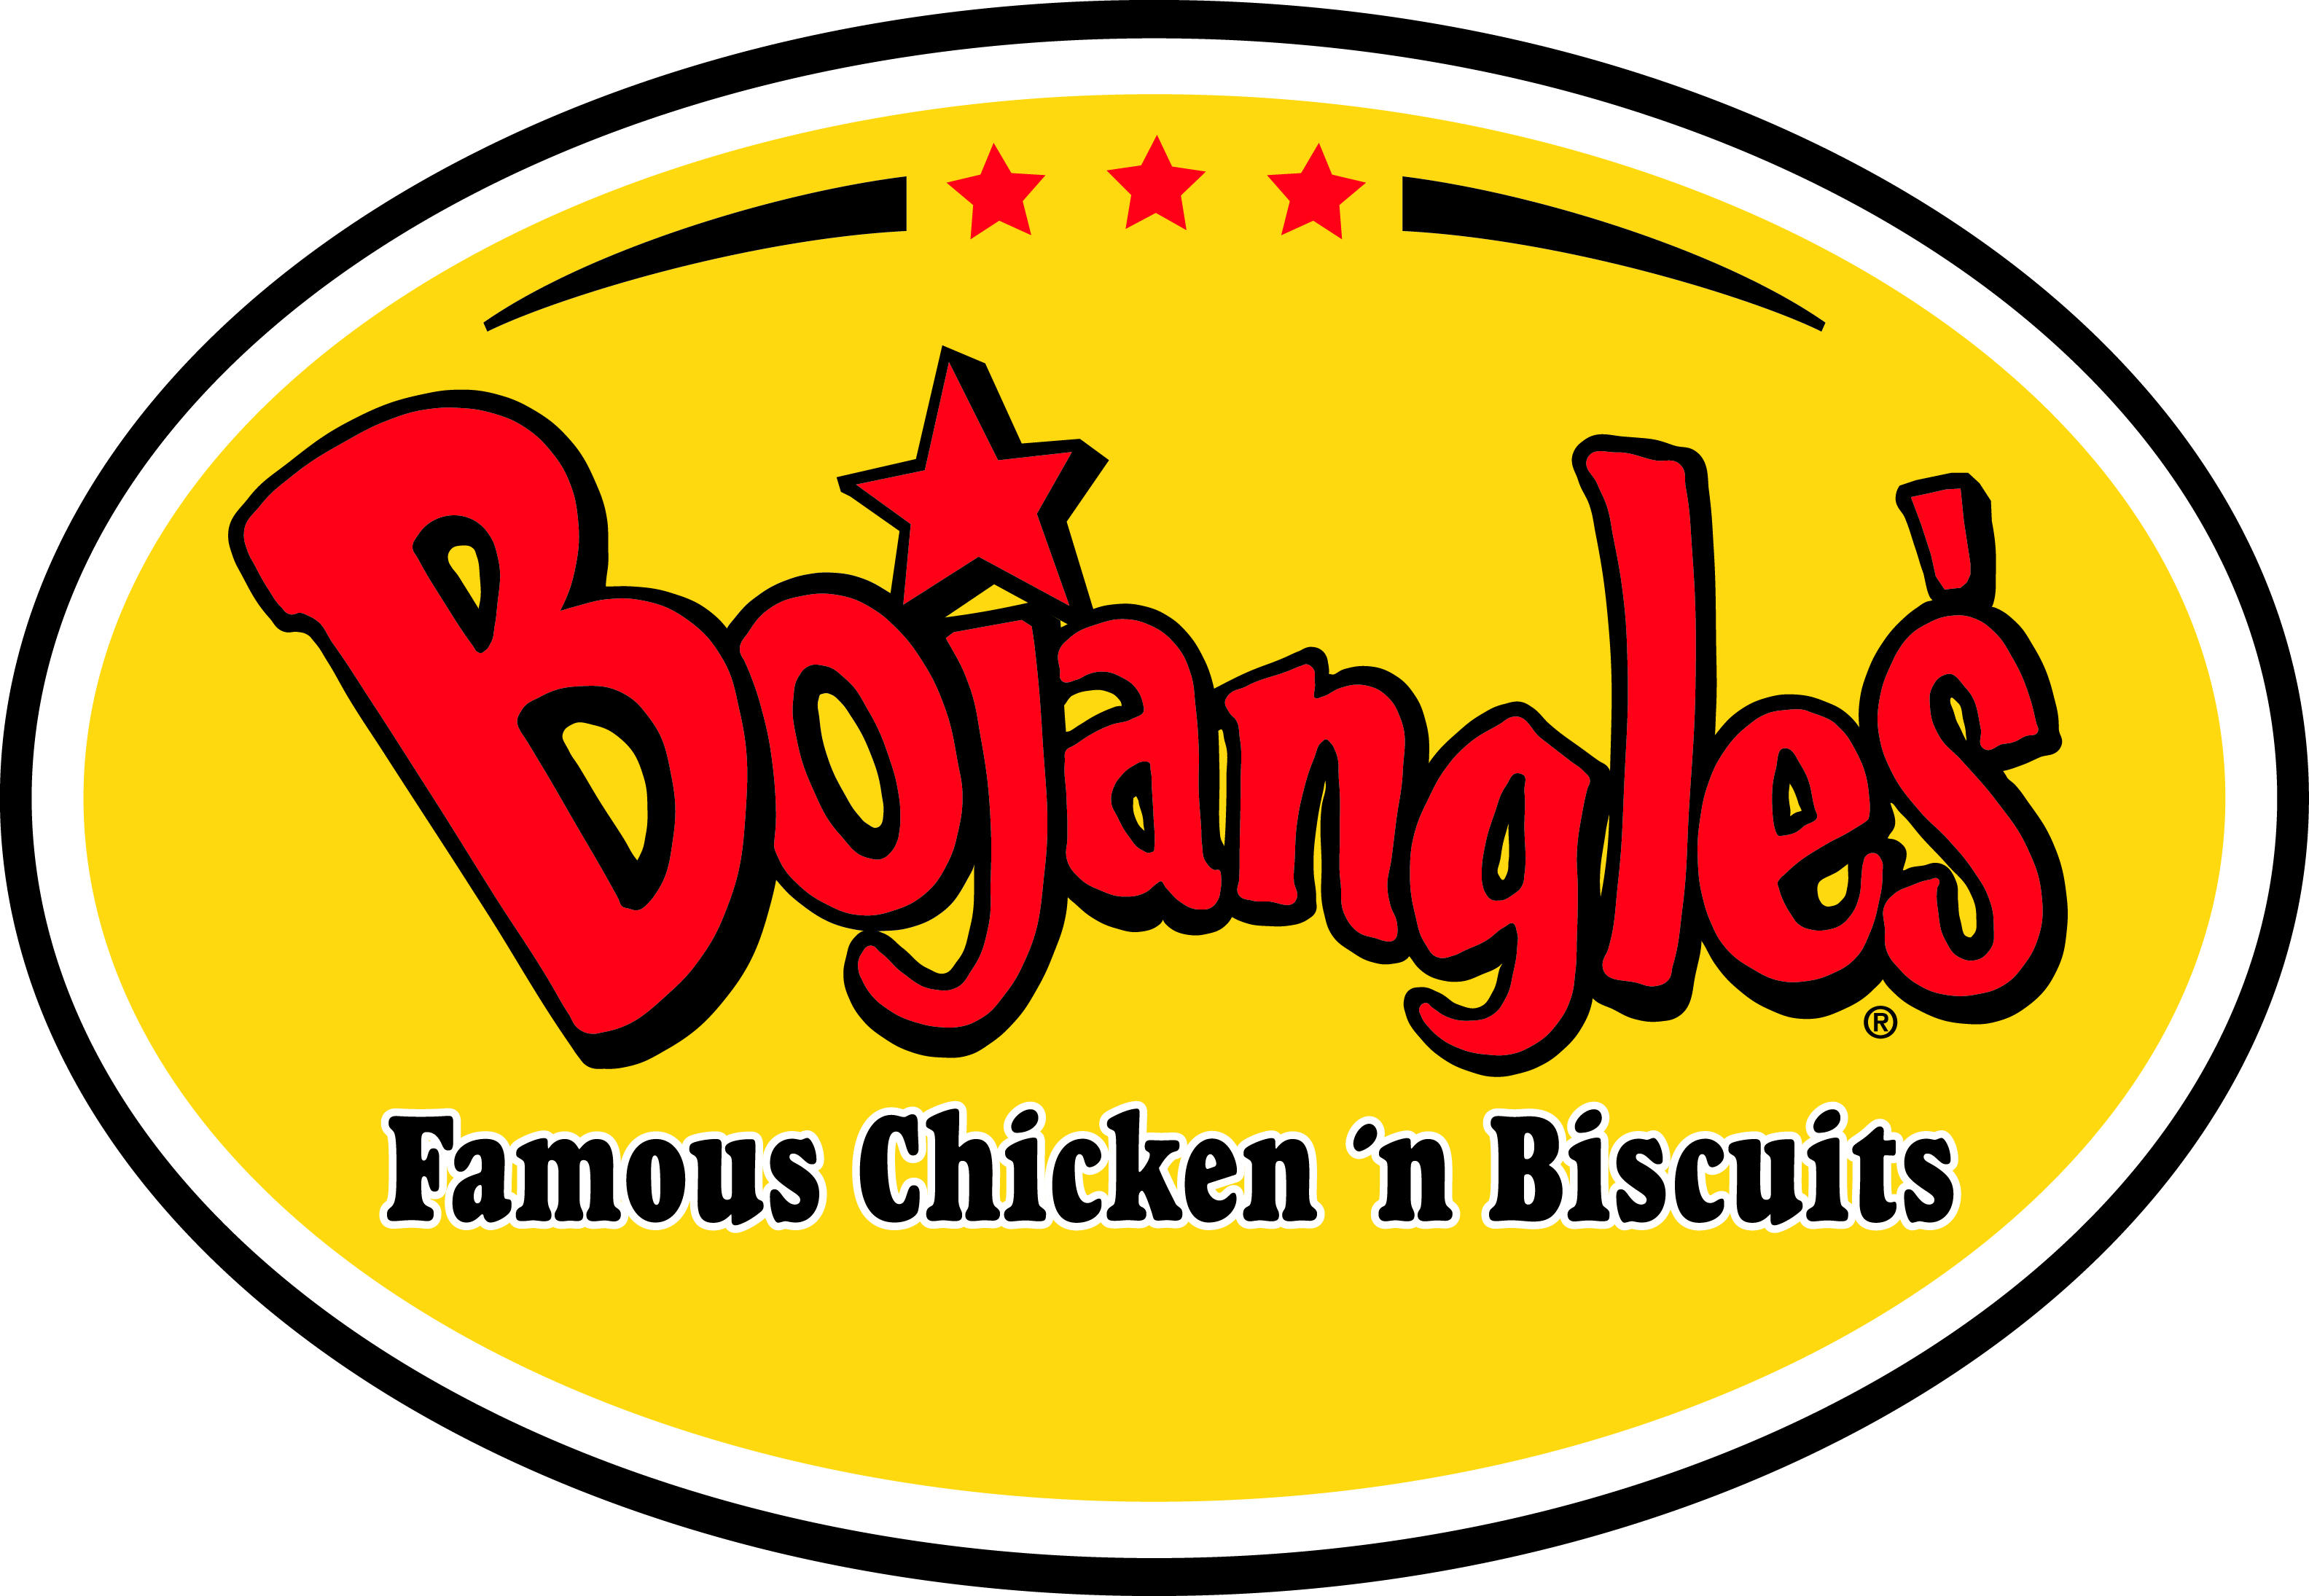 bojangles at 208 e franklin street in hartwell ga famous chicken